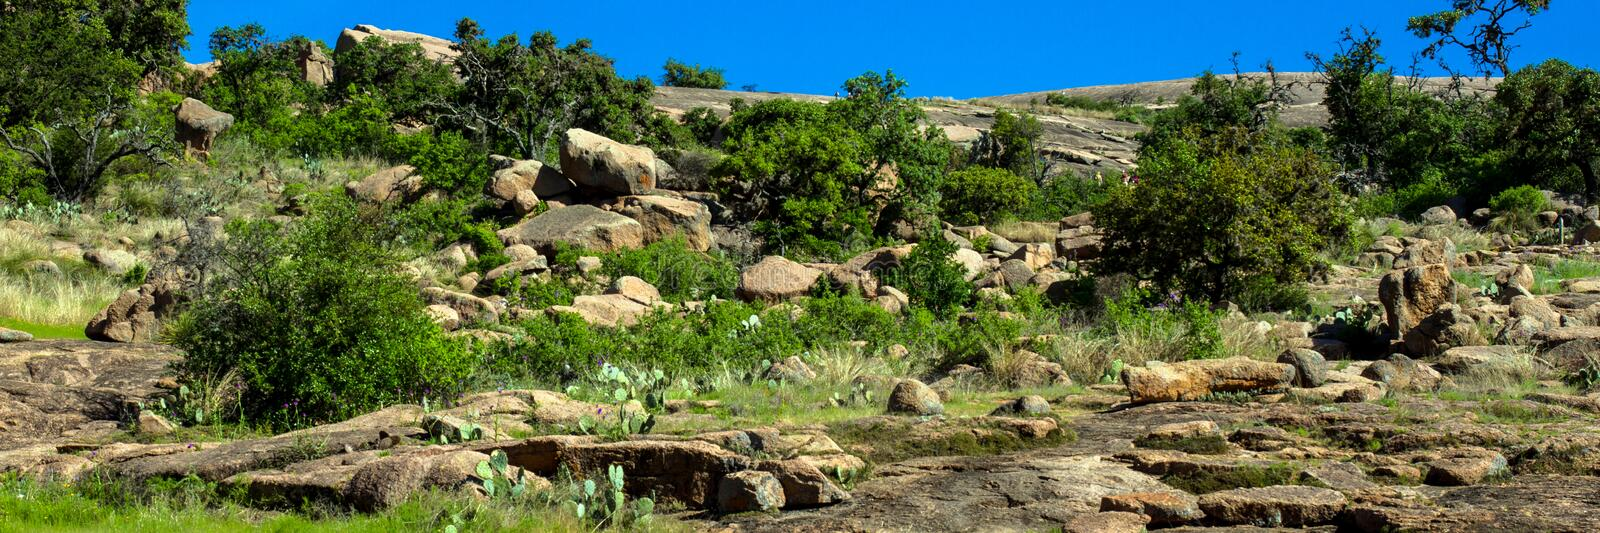 Panorama of cacti and rocks at Enchanted Rock State Natural Area in Texas. Panorama of cacti and rocks at Enchanted Rock State Natural Area near Fredericksburg royalty free stock photography